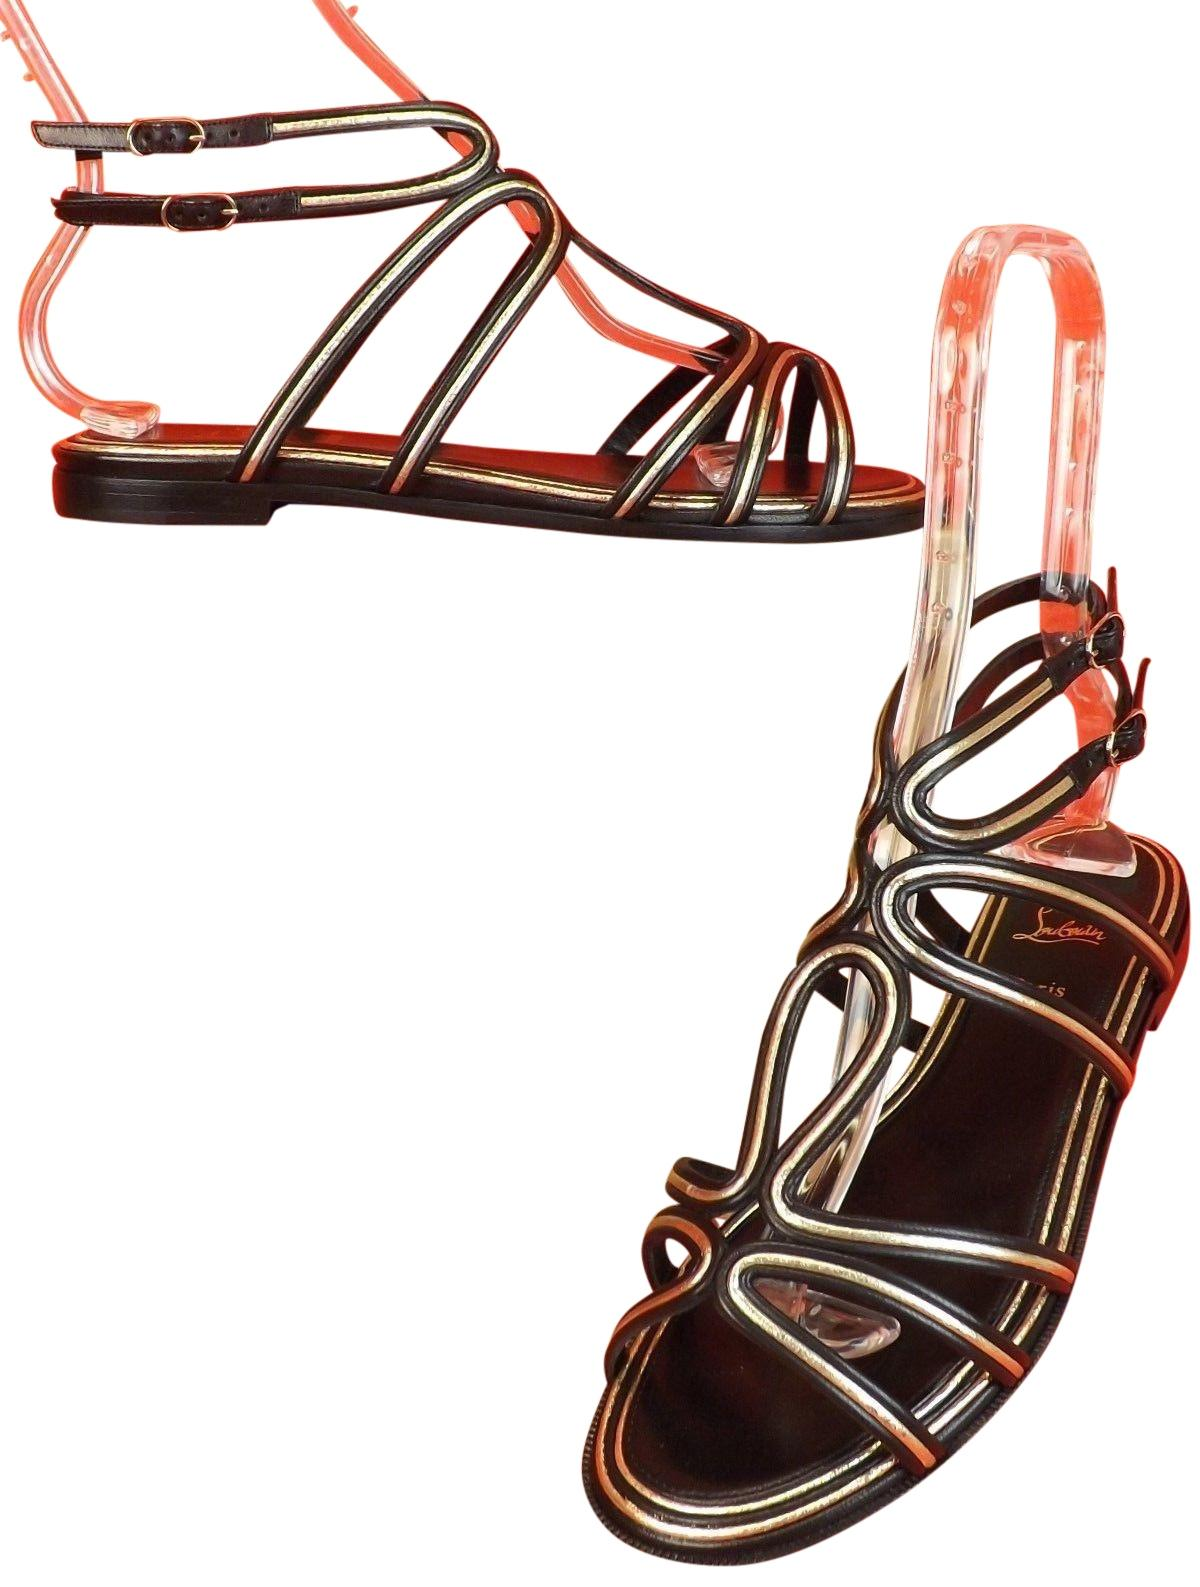 5211f9fc5ac2 ... leather gladiator sandals multi 9e3ad f1304  best price christian  louboutin multi colored sandals 32314 db775